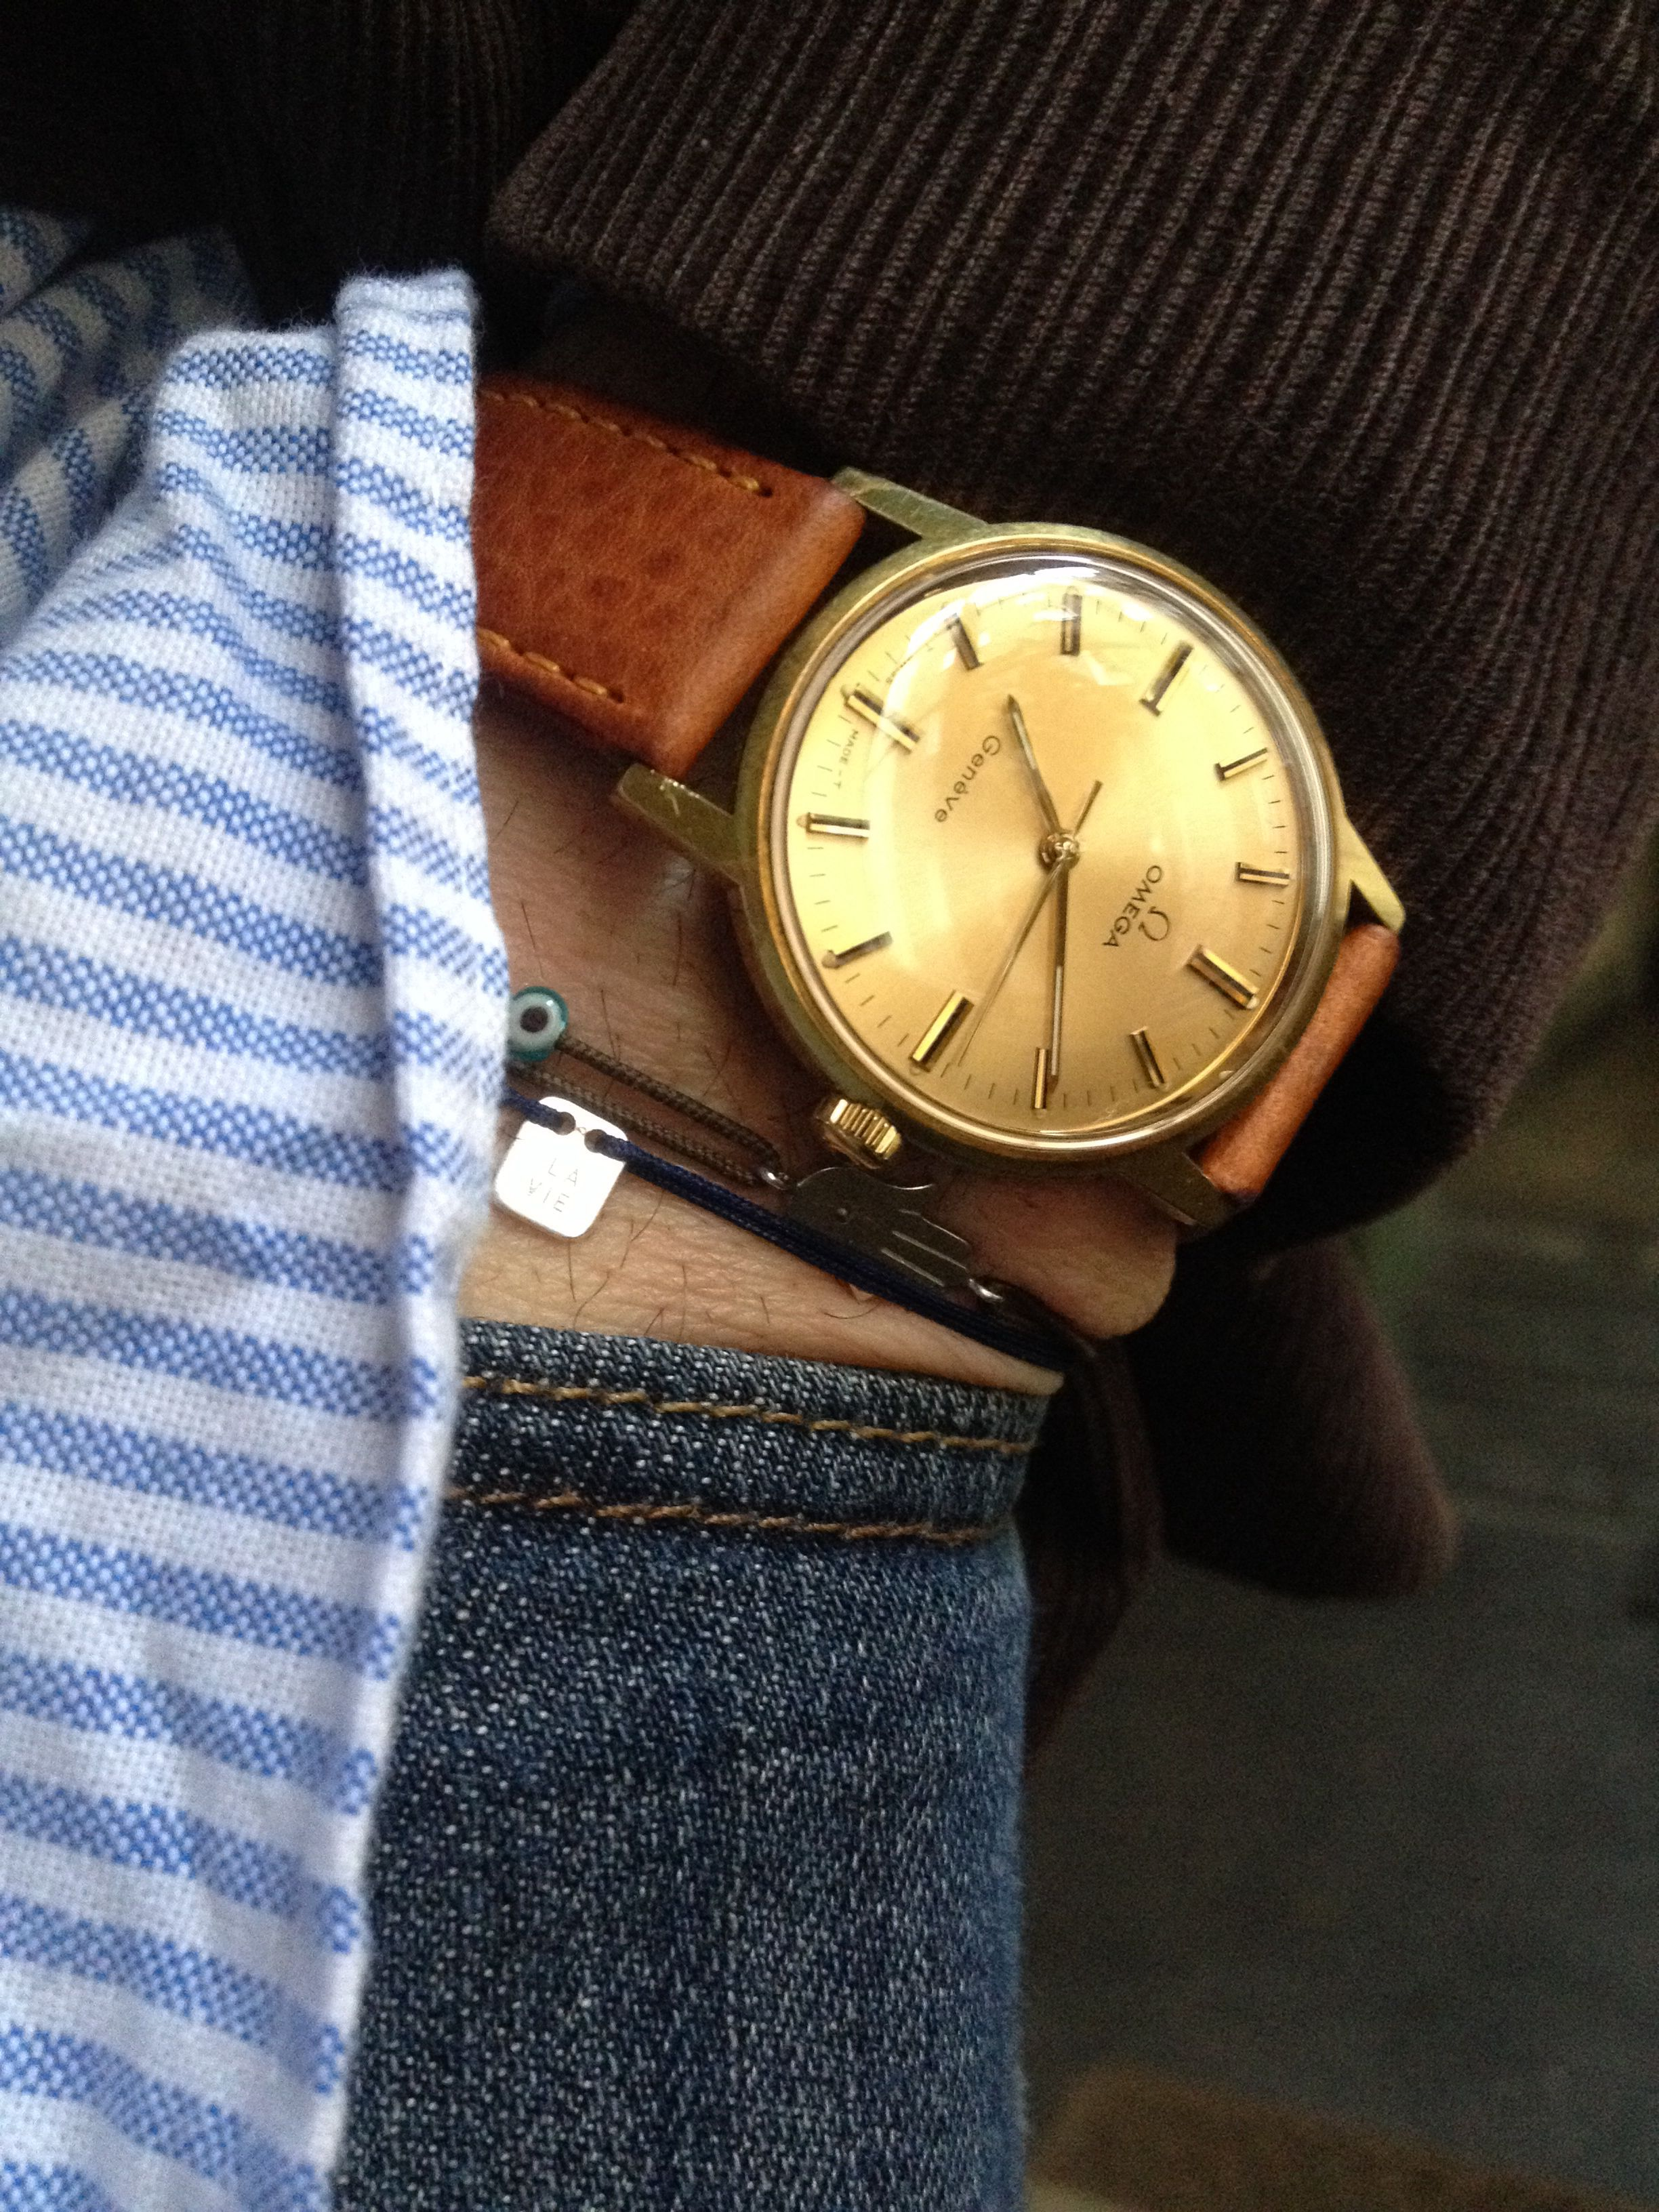 1960 Omega watch with gold face and tan leather strap